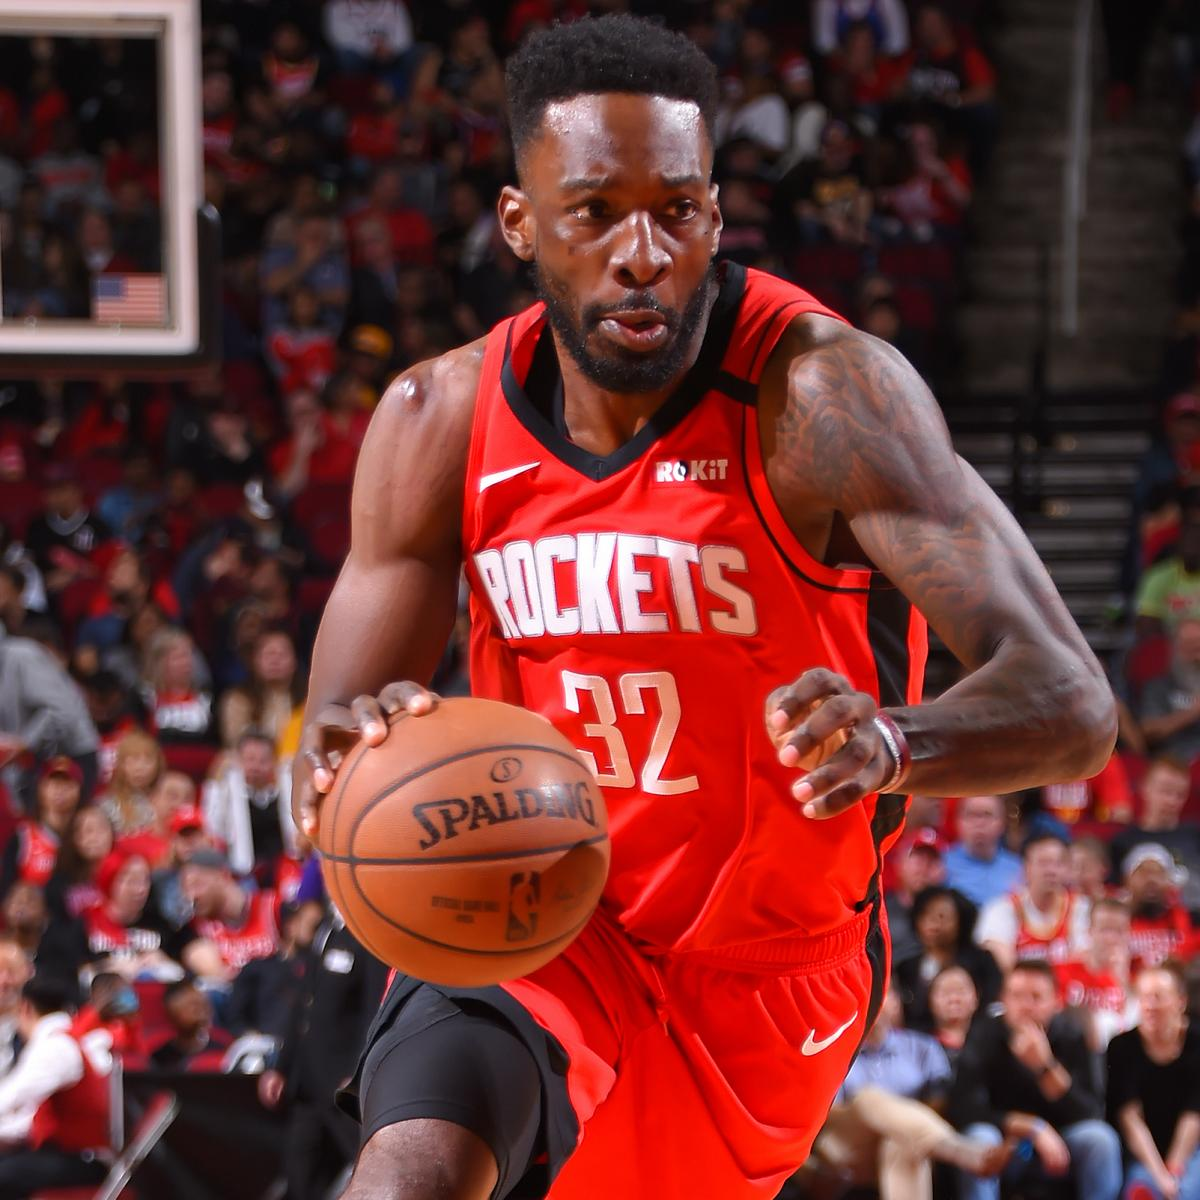 Rockets News: Jeff Green Signs Contract for Rest of Season After 10-Day Deal